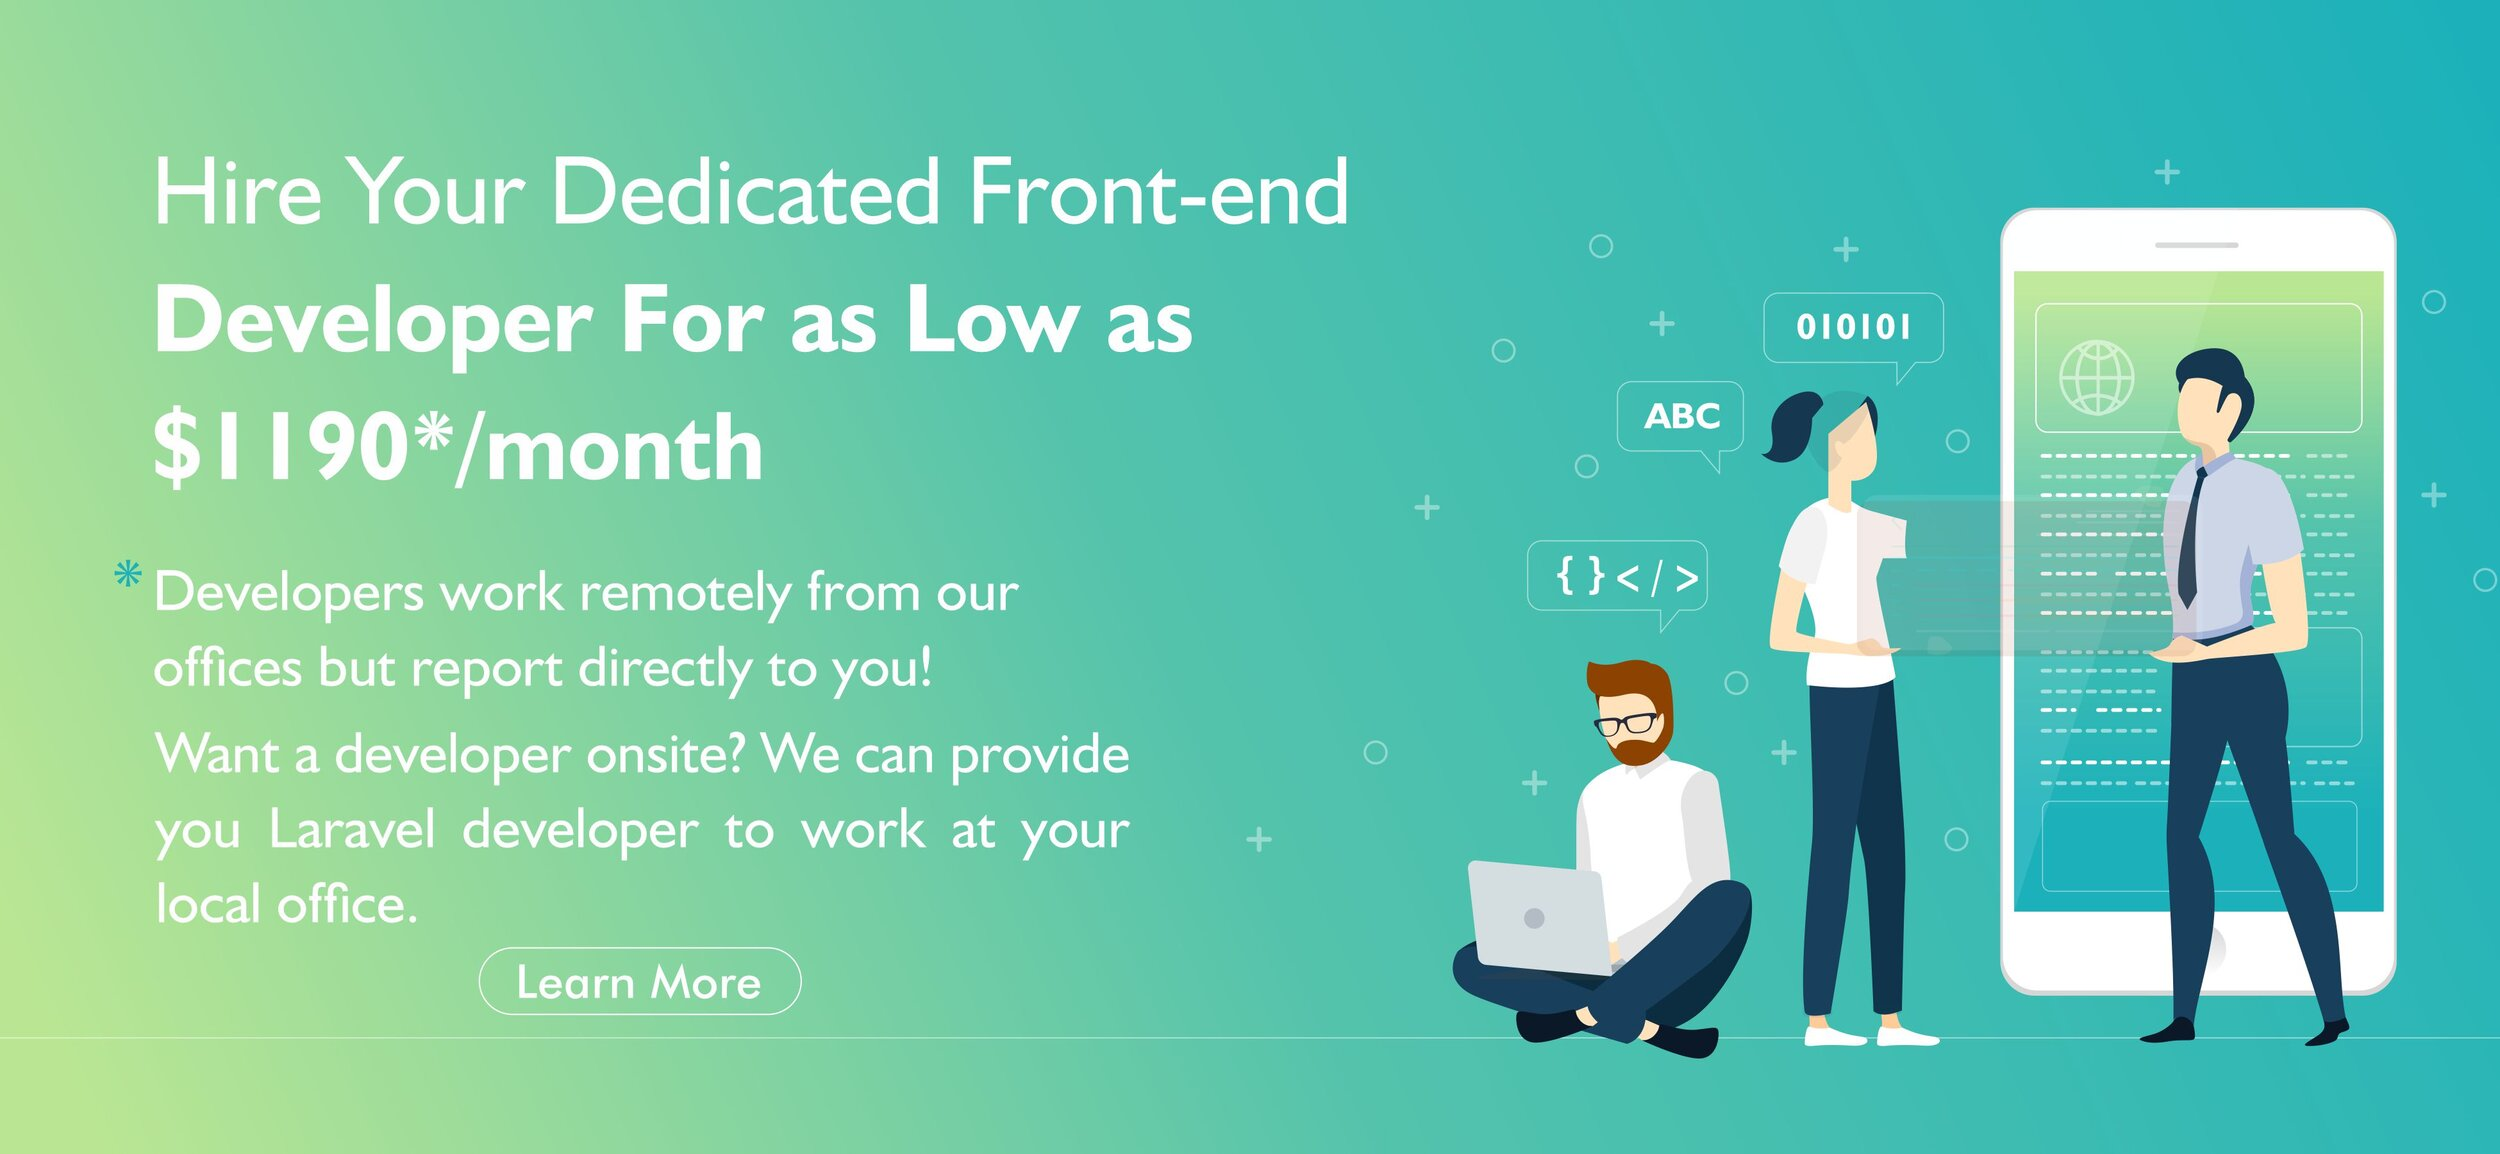 Hire Front-End Developers at $1190* a Month